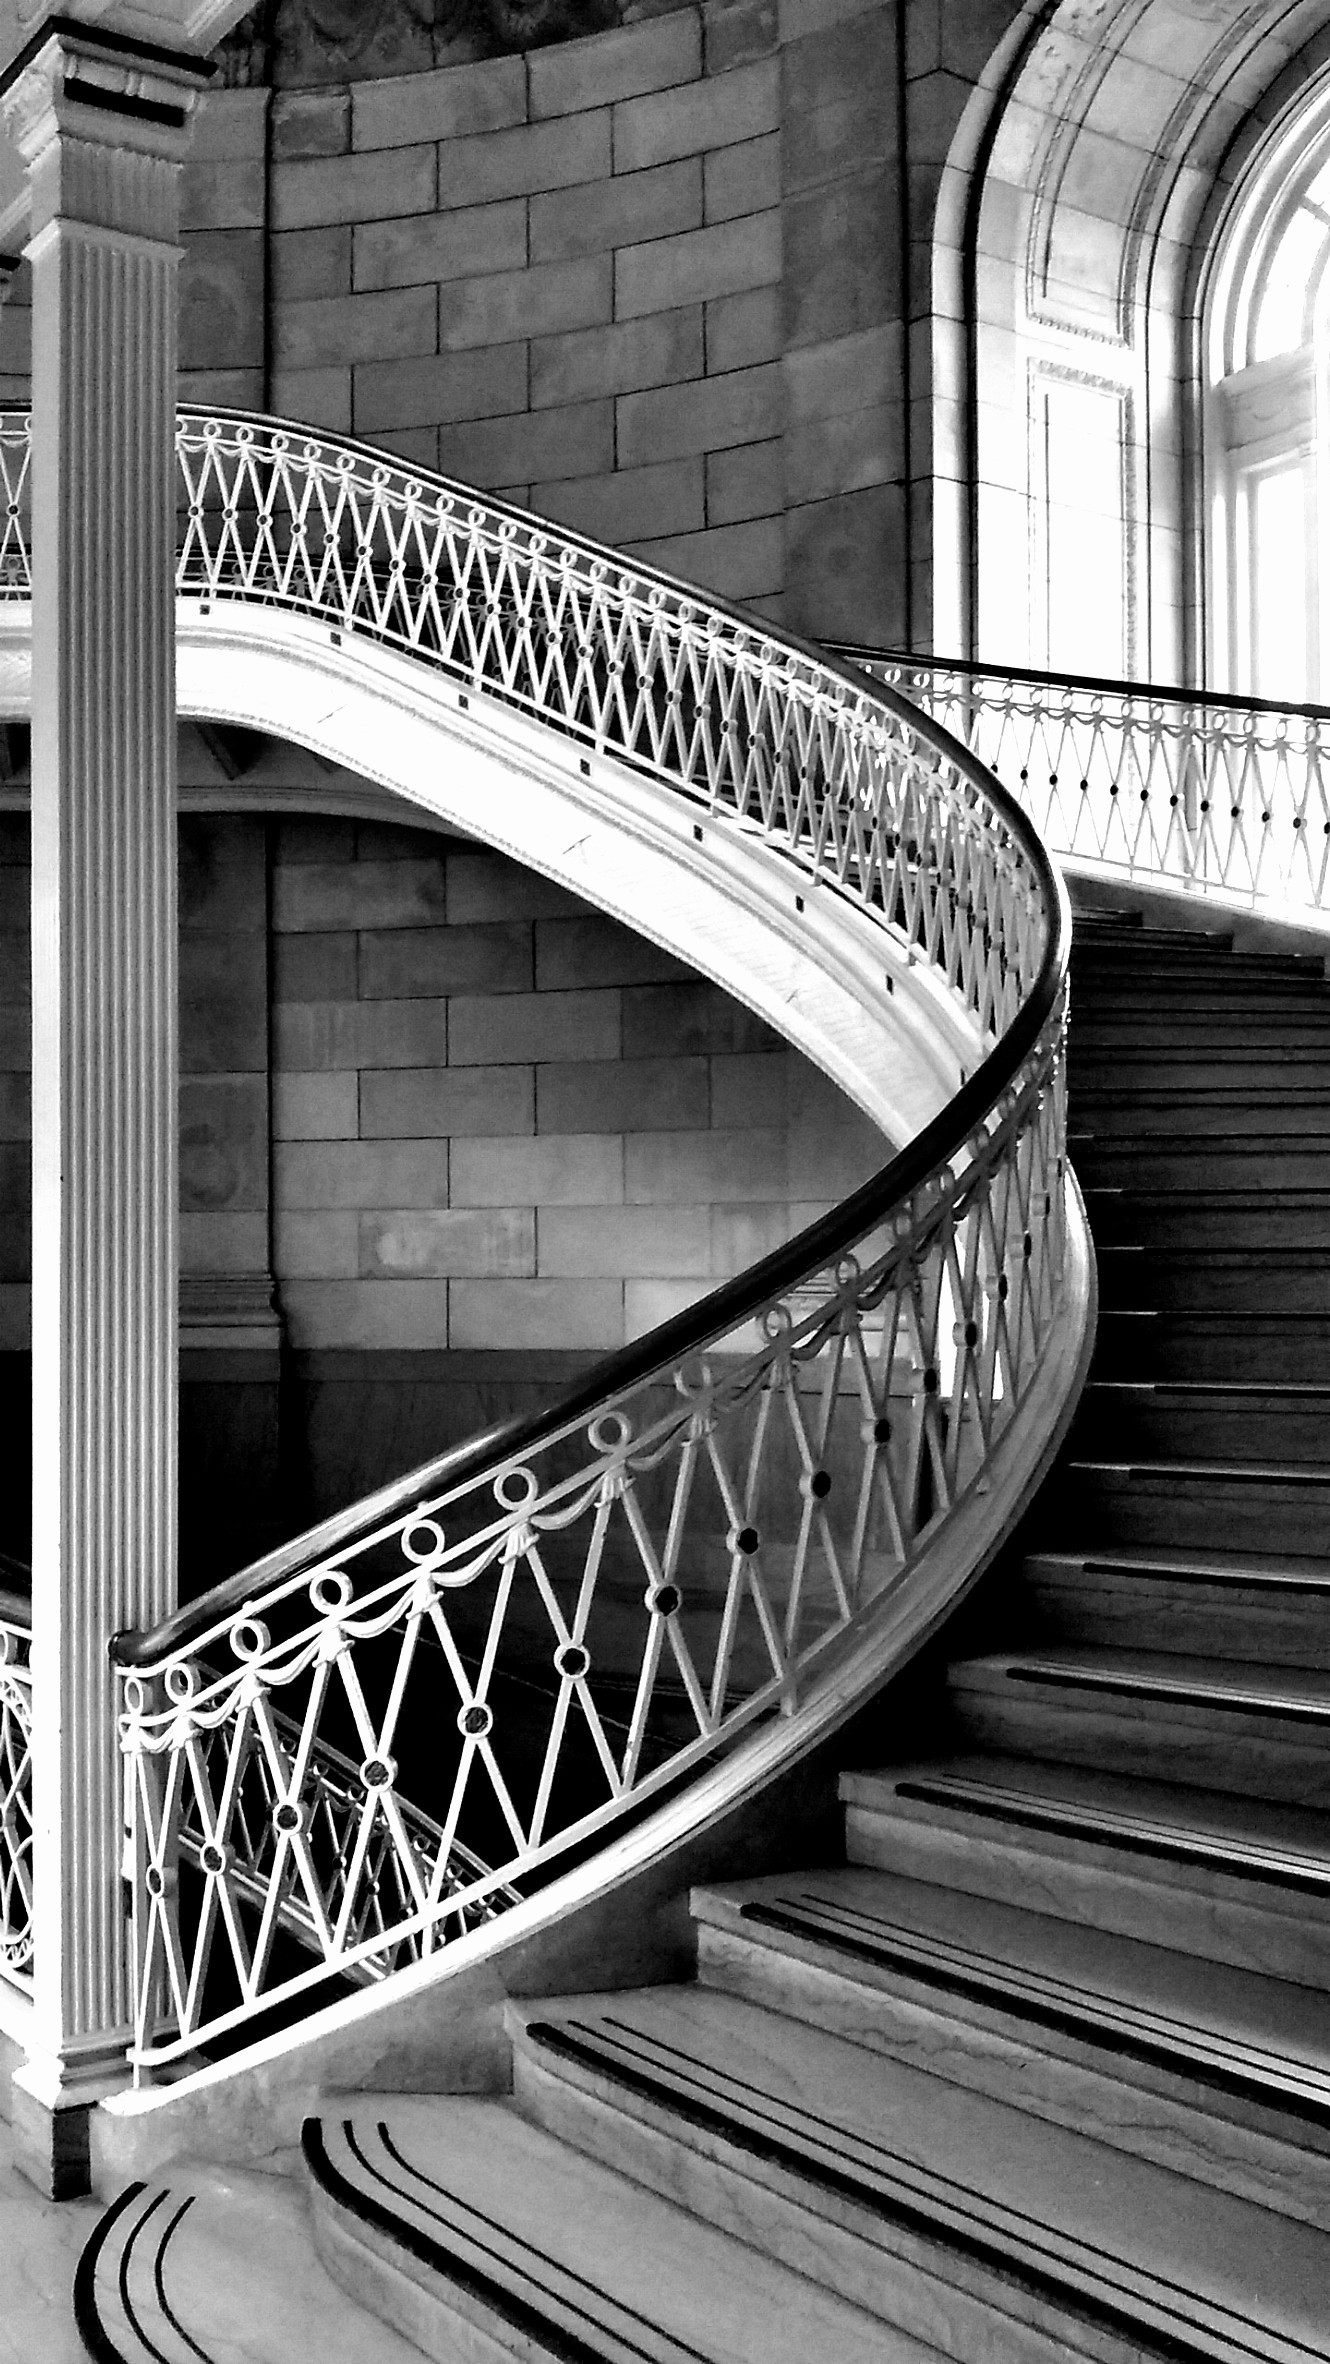 Stairway - Black and White Photos by Albertogeovany on PicsArt